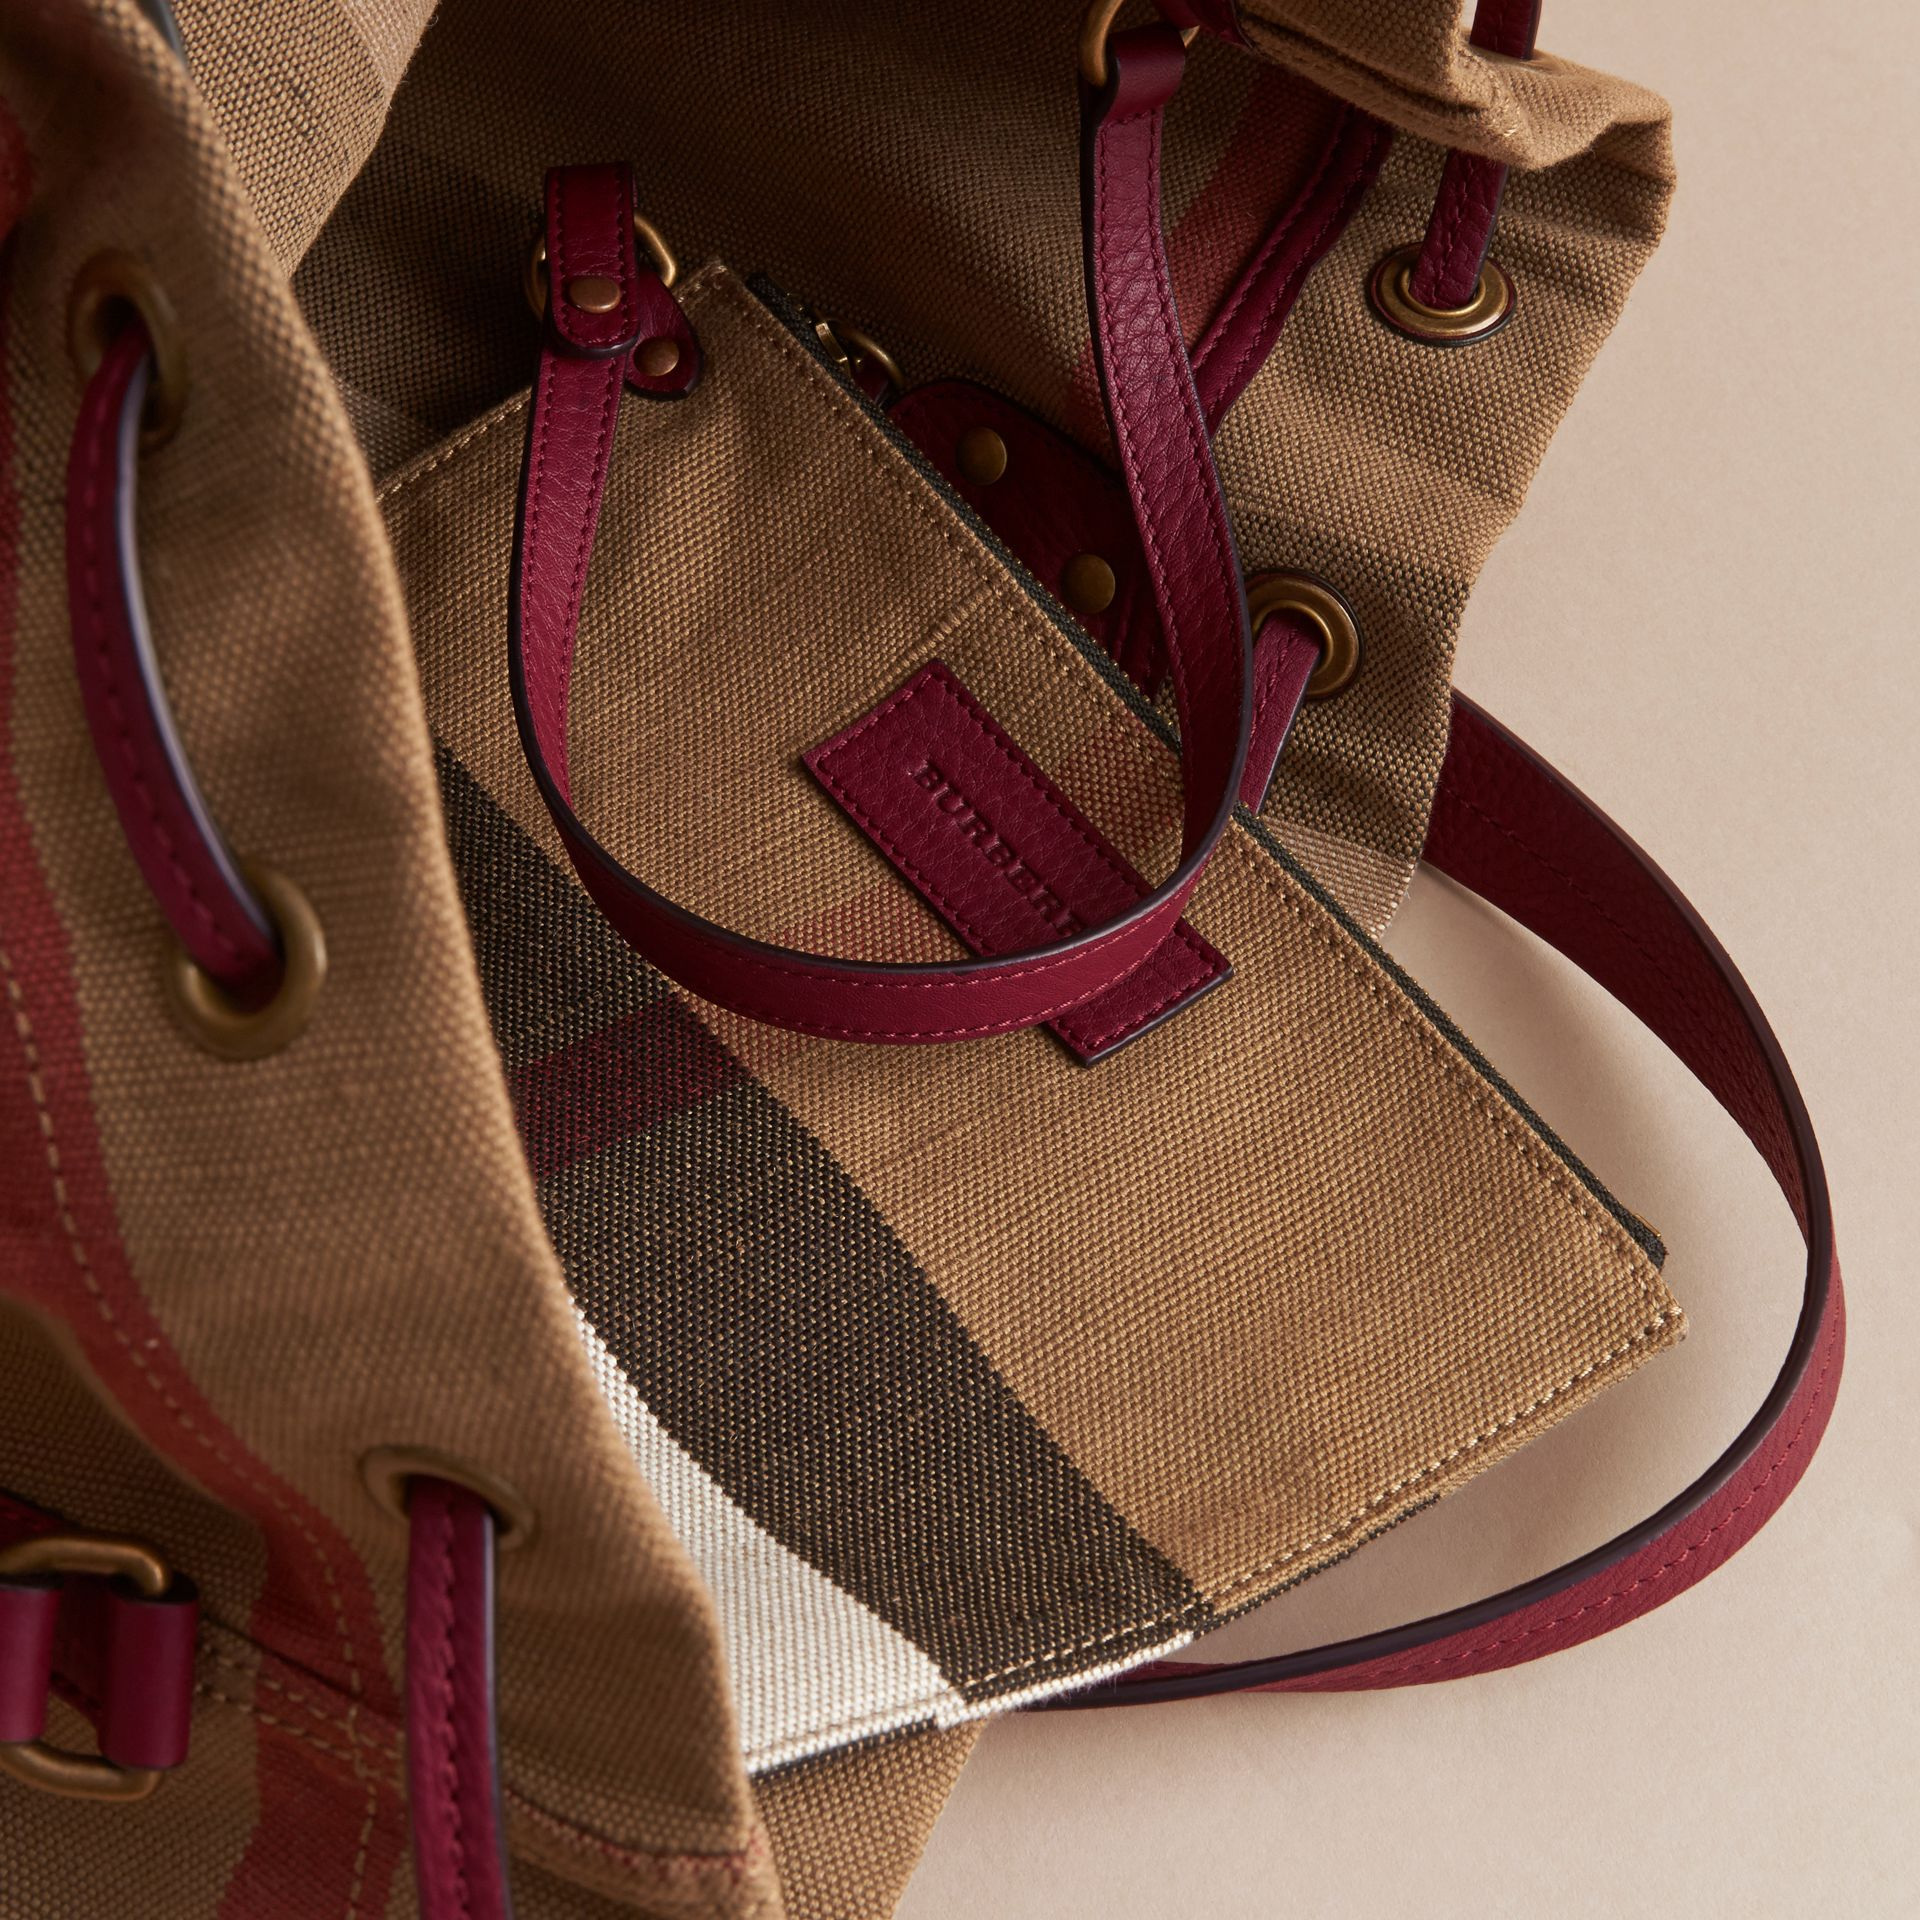 Medium Canvas Check and Leather Bucket Bag in Burgundy Red - Women | Burberry - gallery image 6